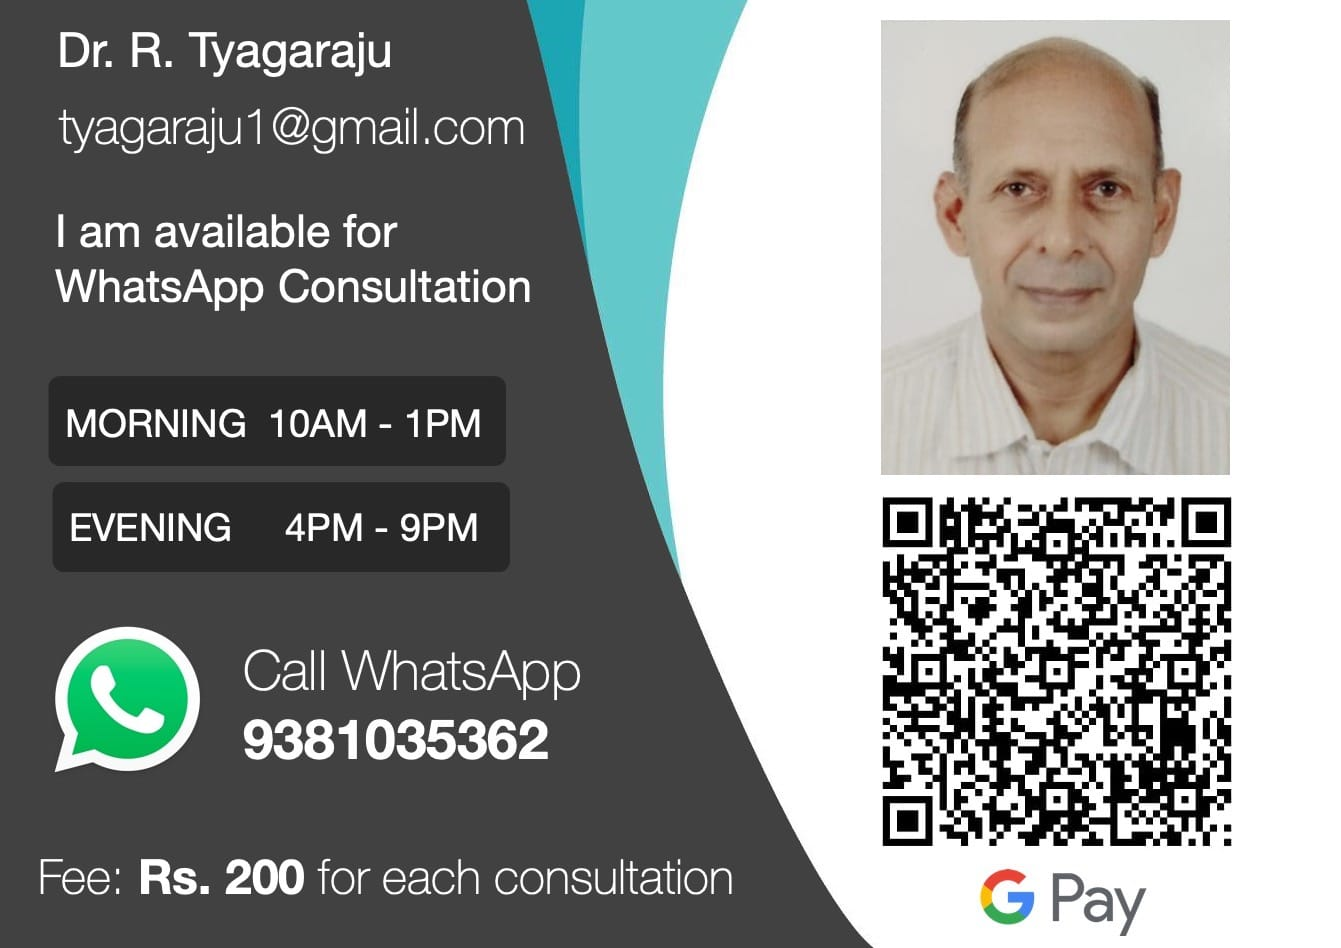 Dr. Tyagaraju is available for online consultations. WhatsApp Call 9381035362. Fees Rs 200 per consultation.